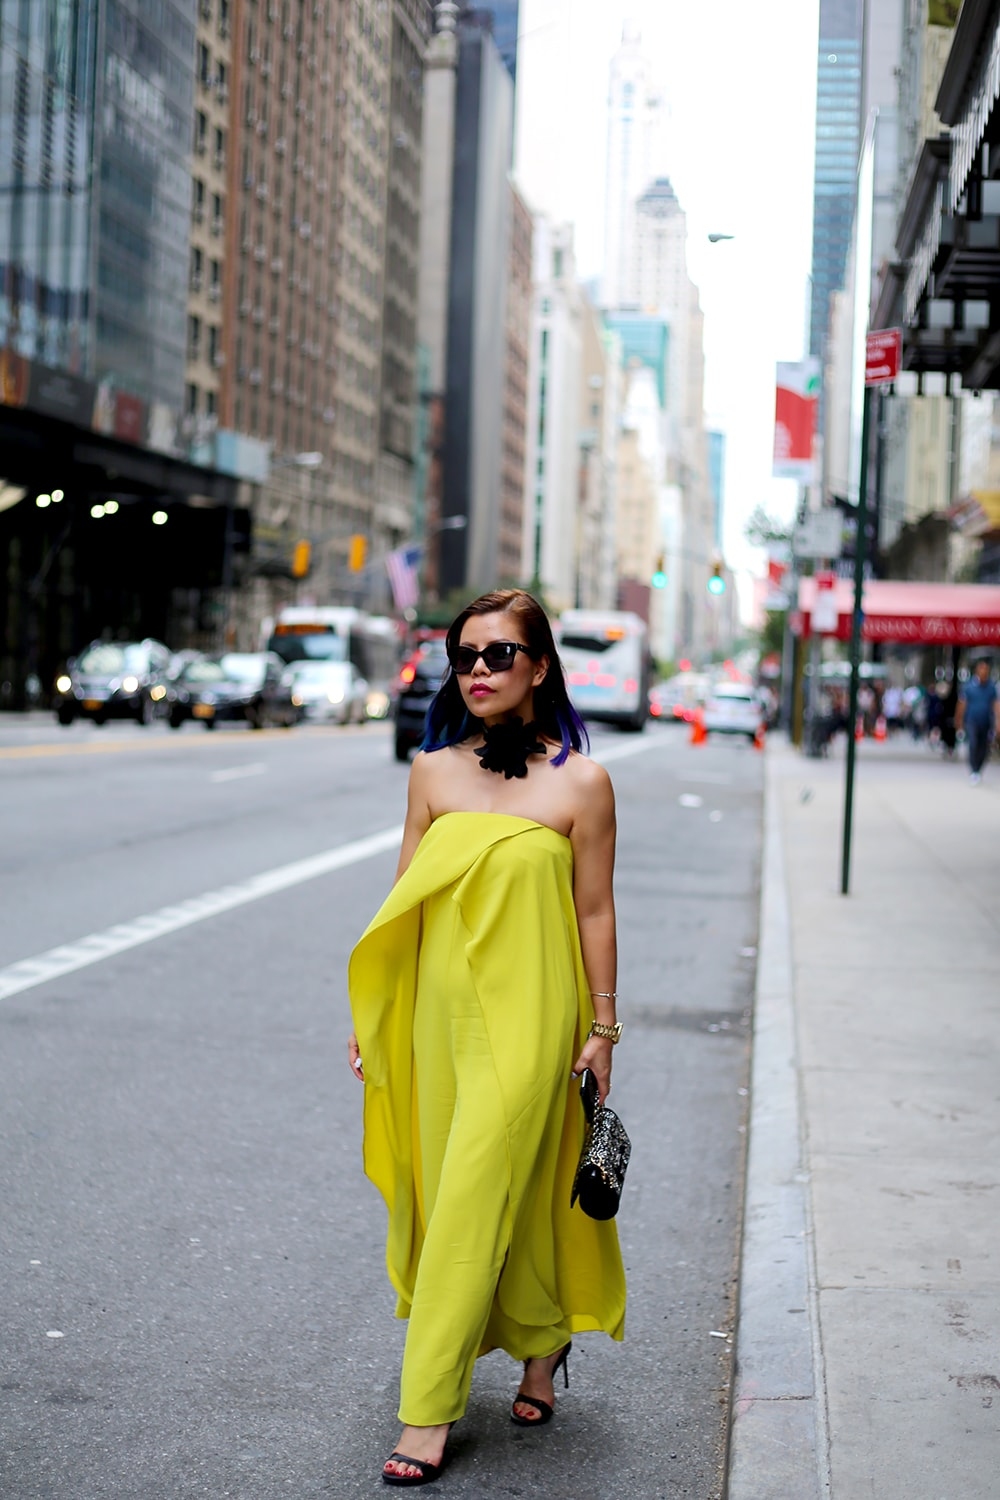 New York Fashion Week 2016- Day 2- Streetstyle- Crystal Phuong